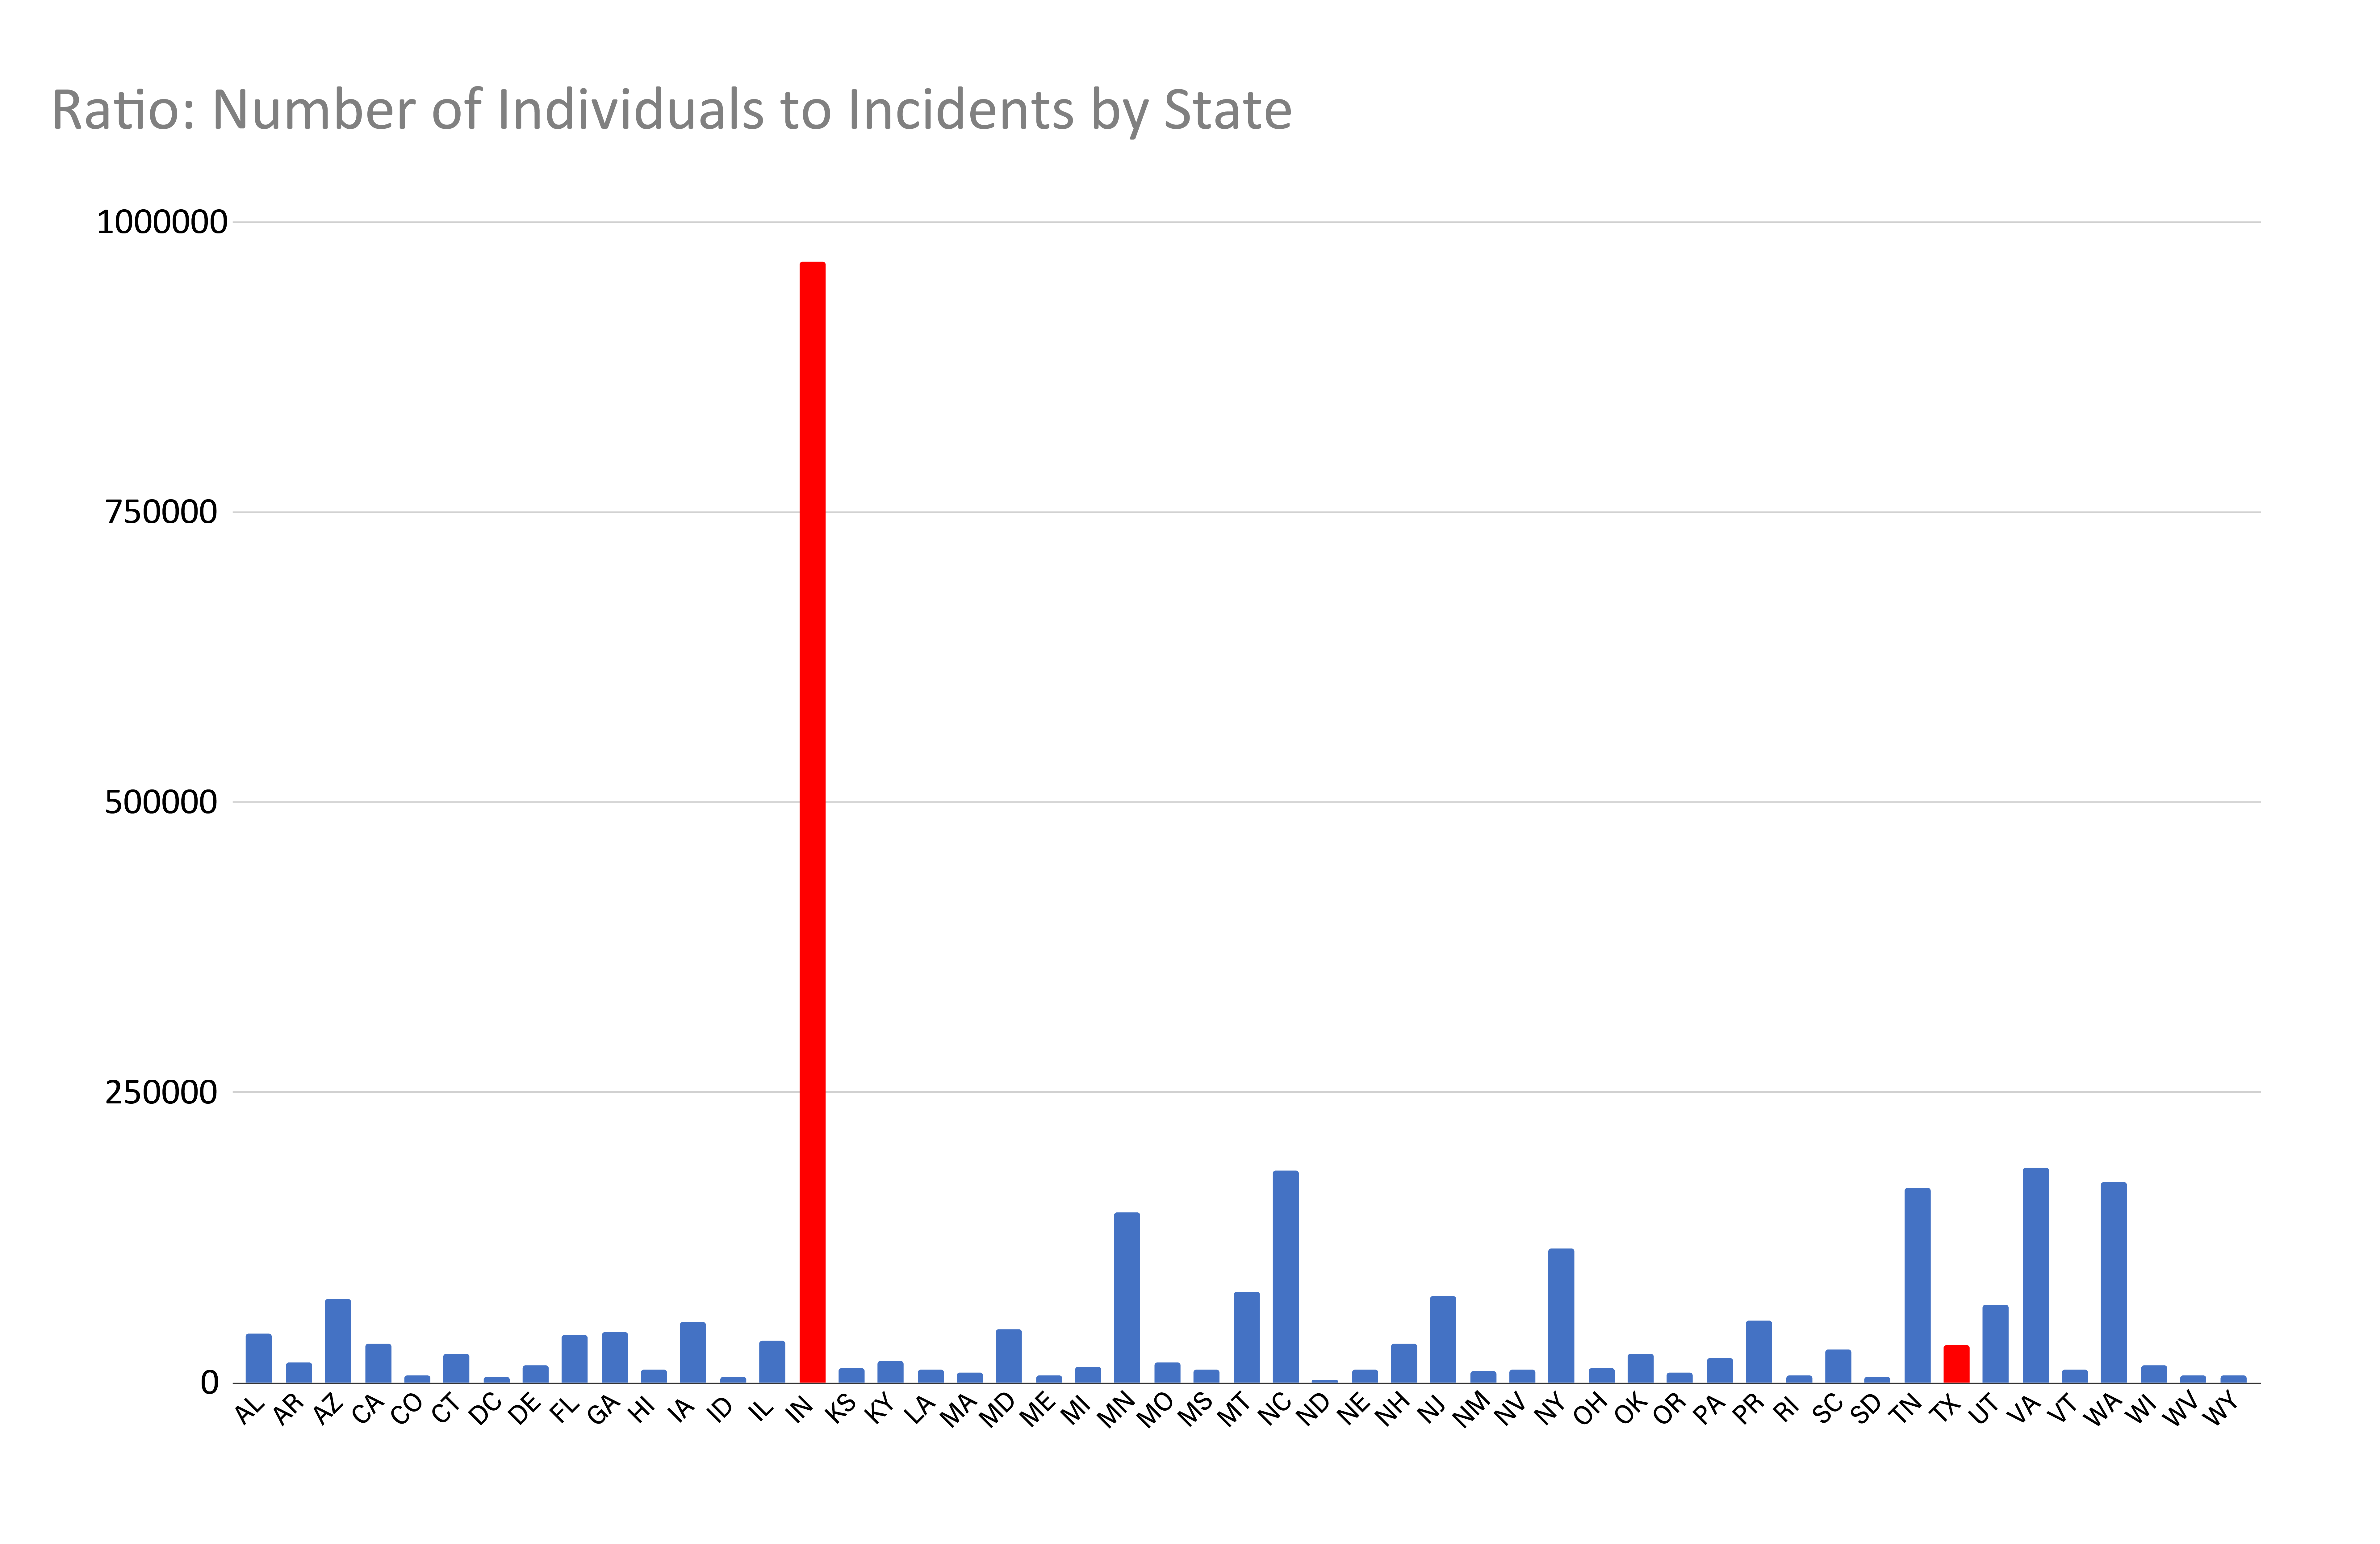 Ratio of Individuals to Incidents by State